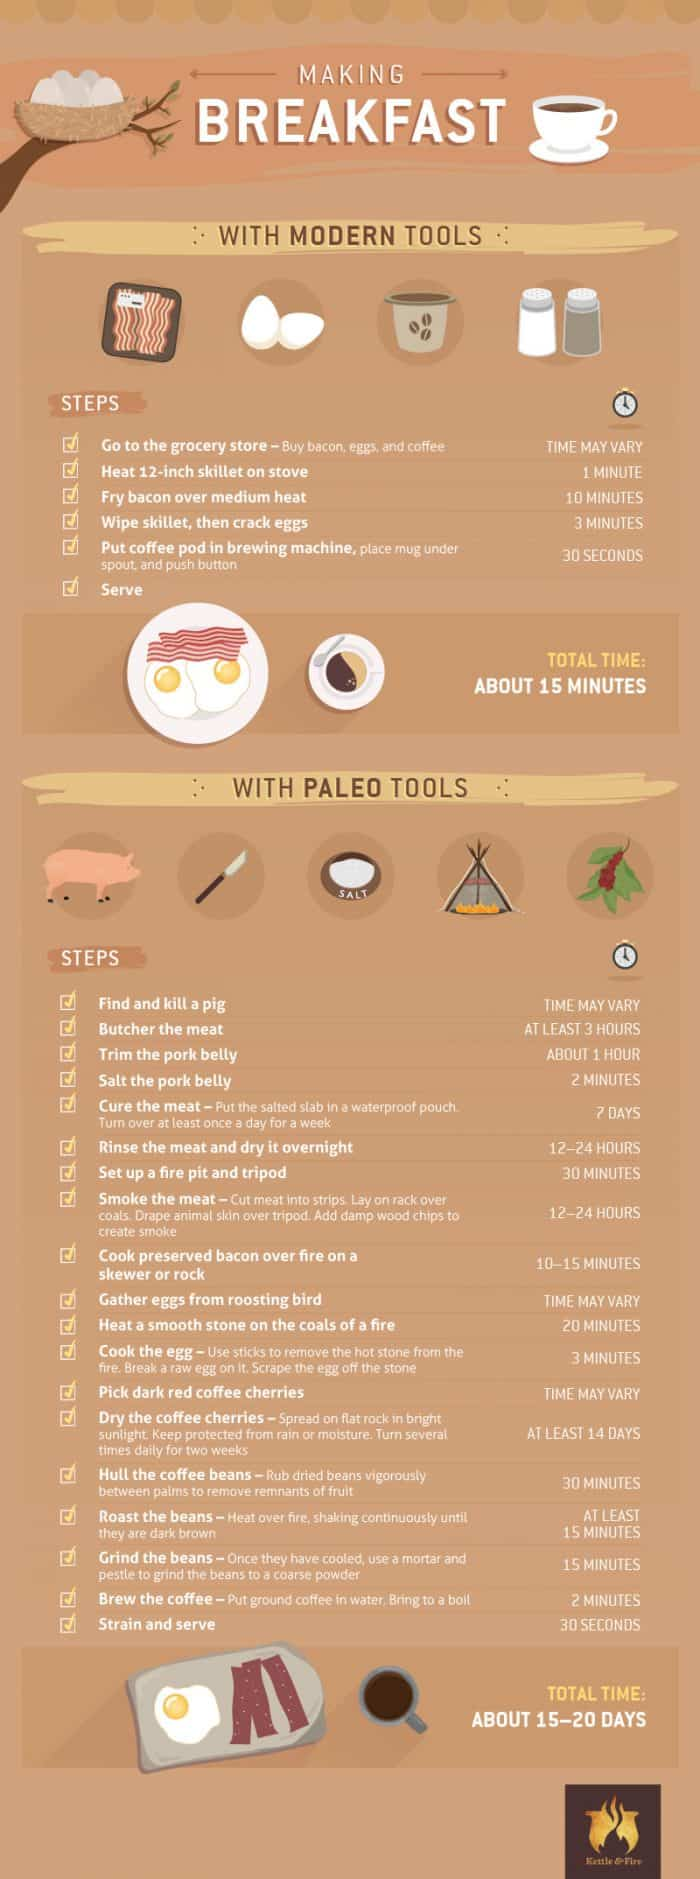 Making breakfast with modern tools infographic